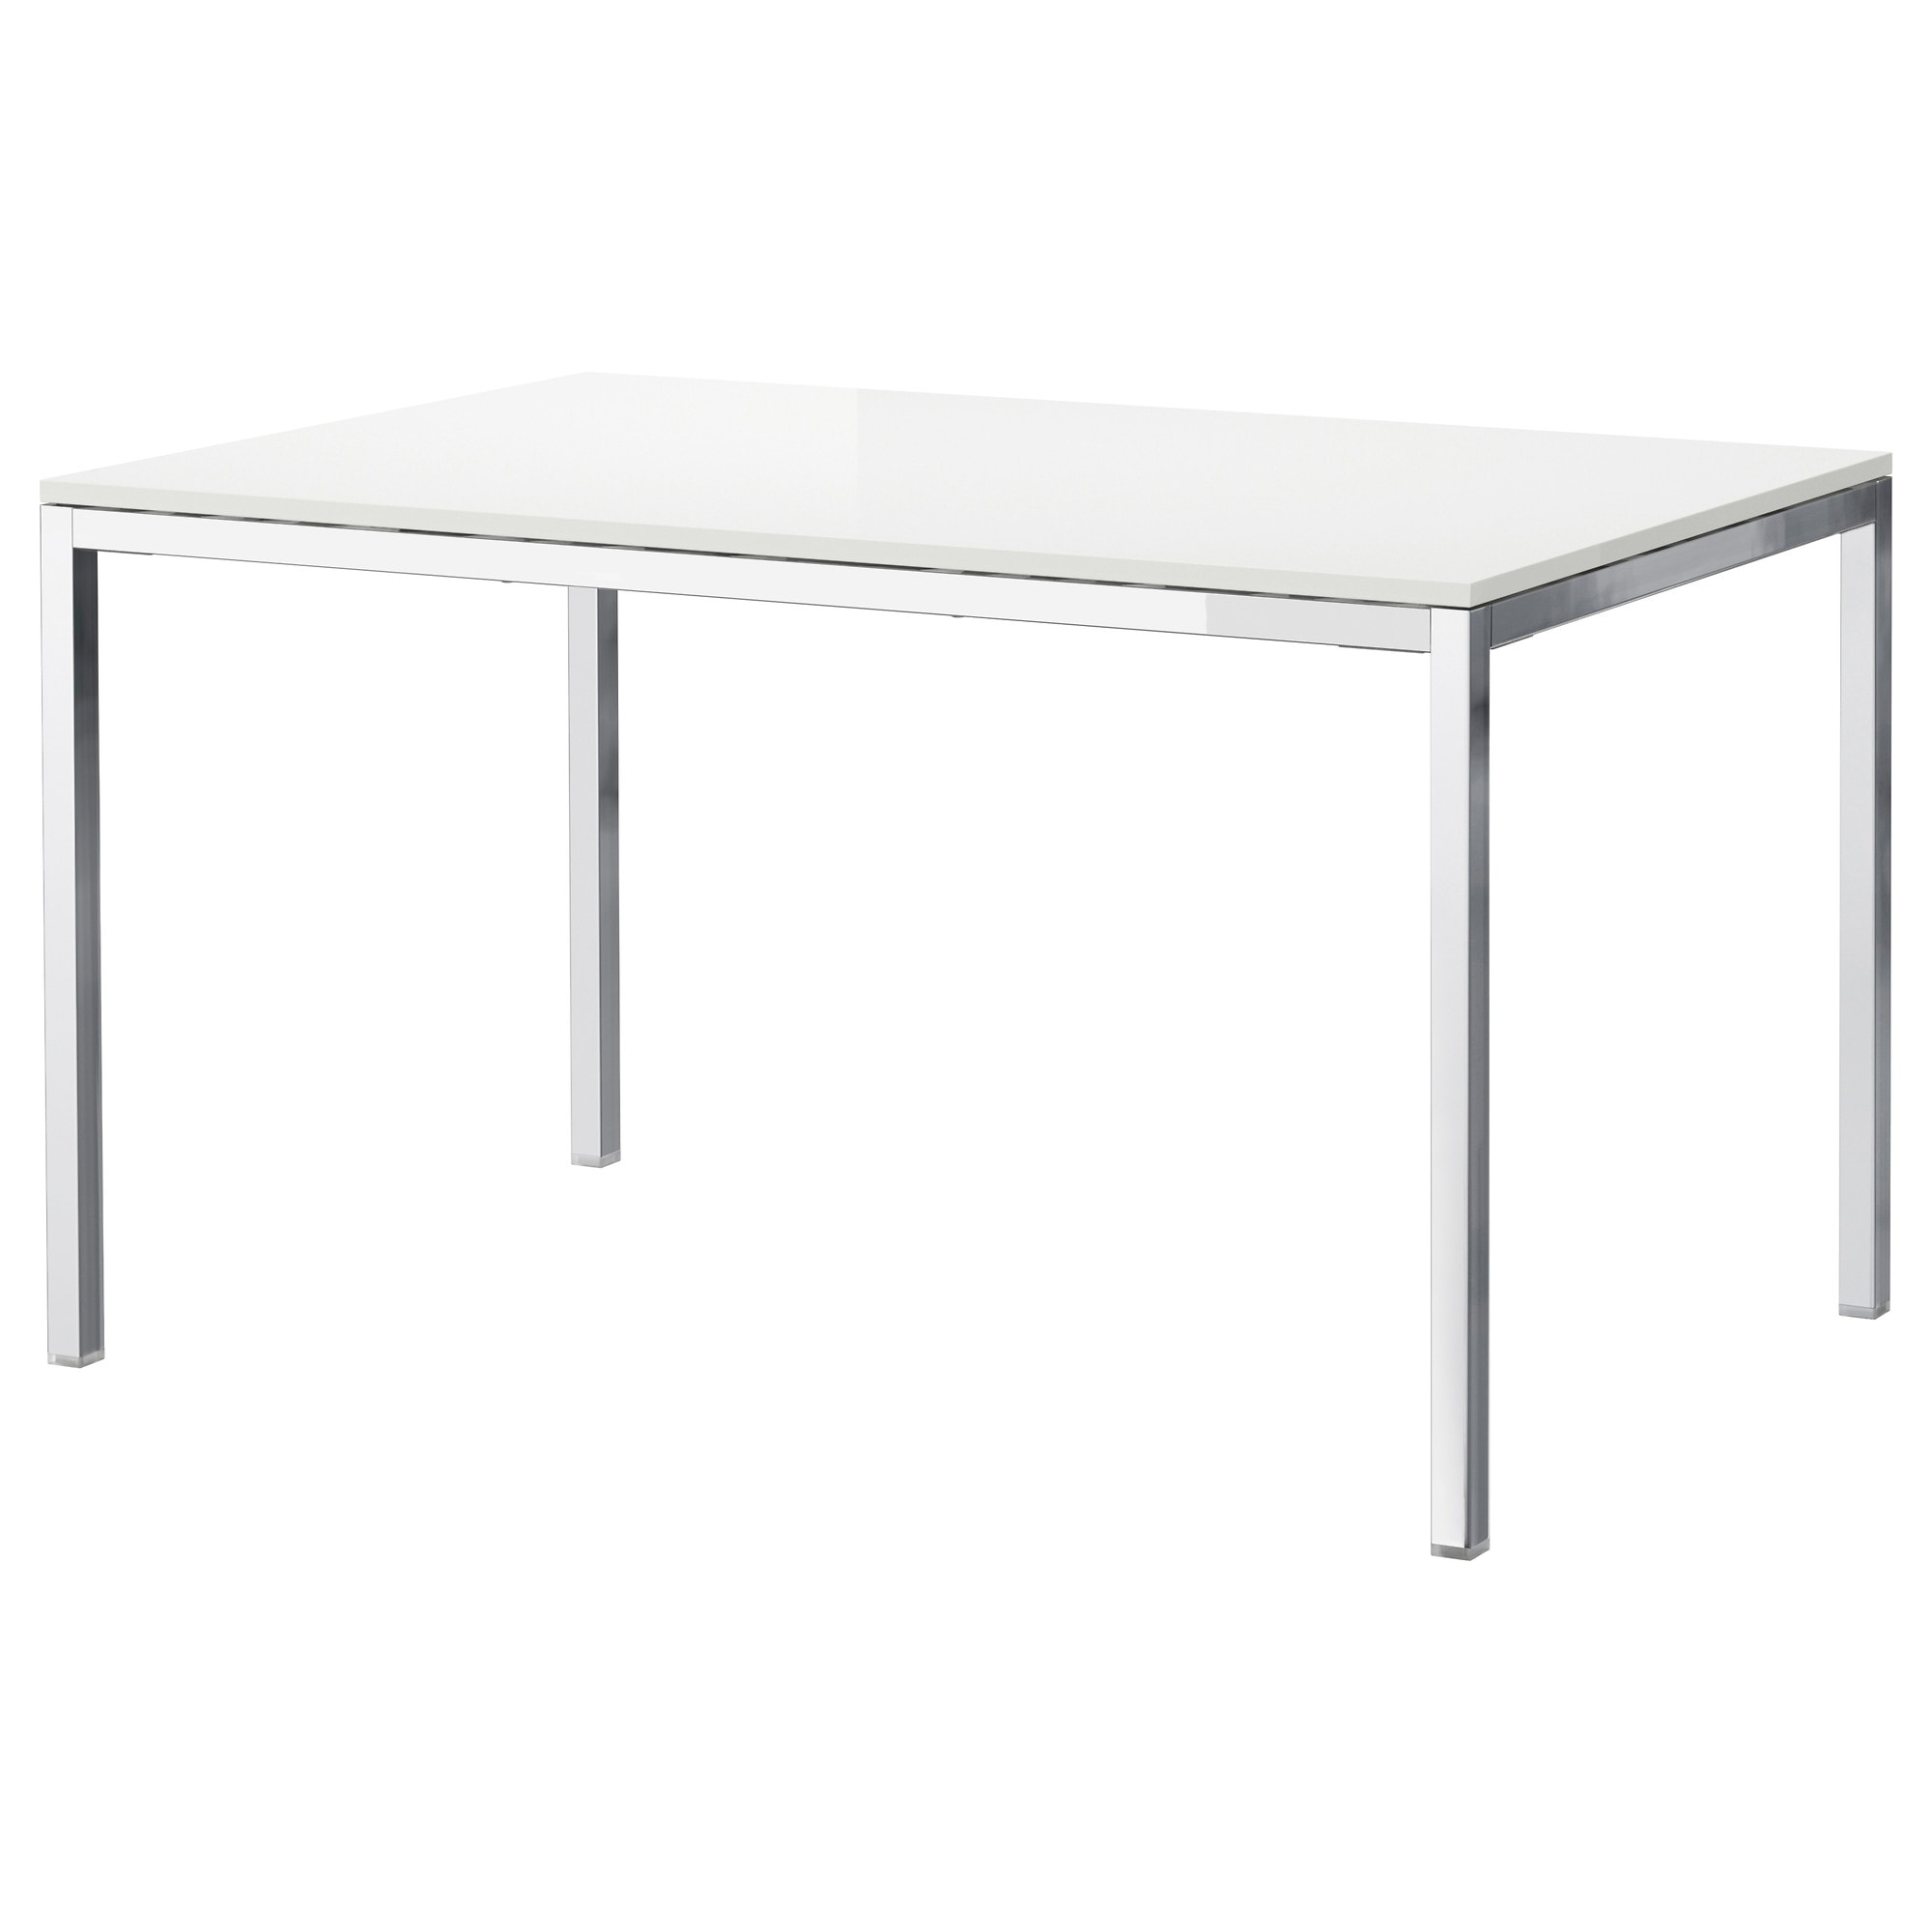 Dining Tables - IKEA